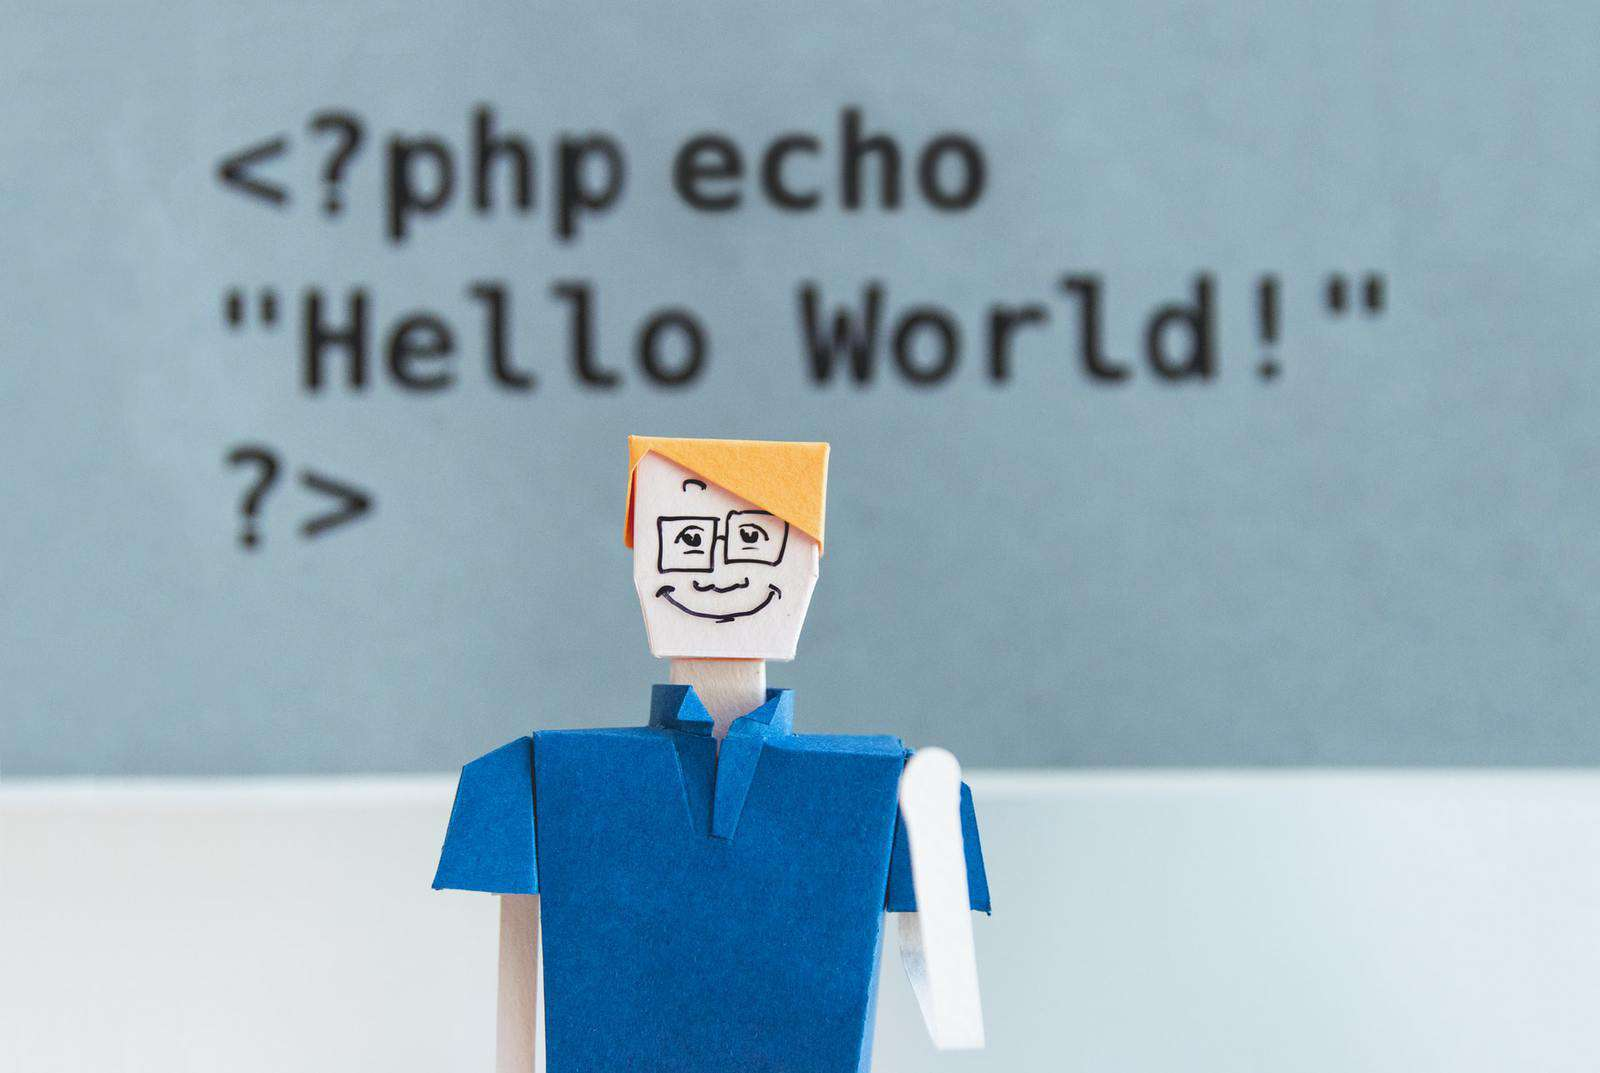 Cardboard figure in front of PHP code